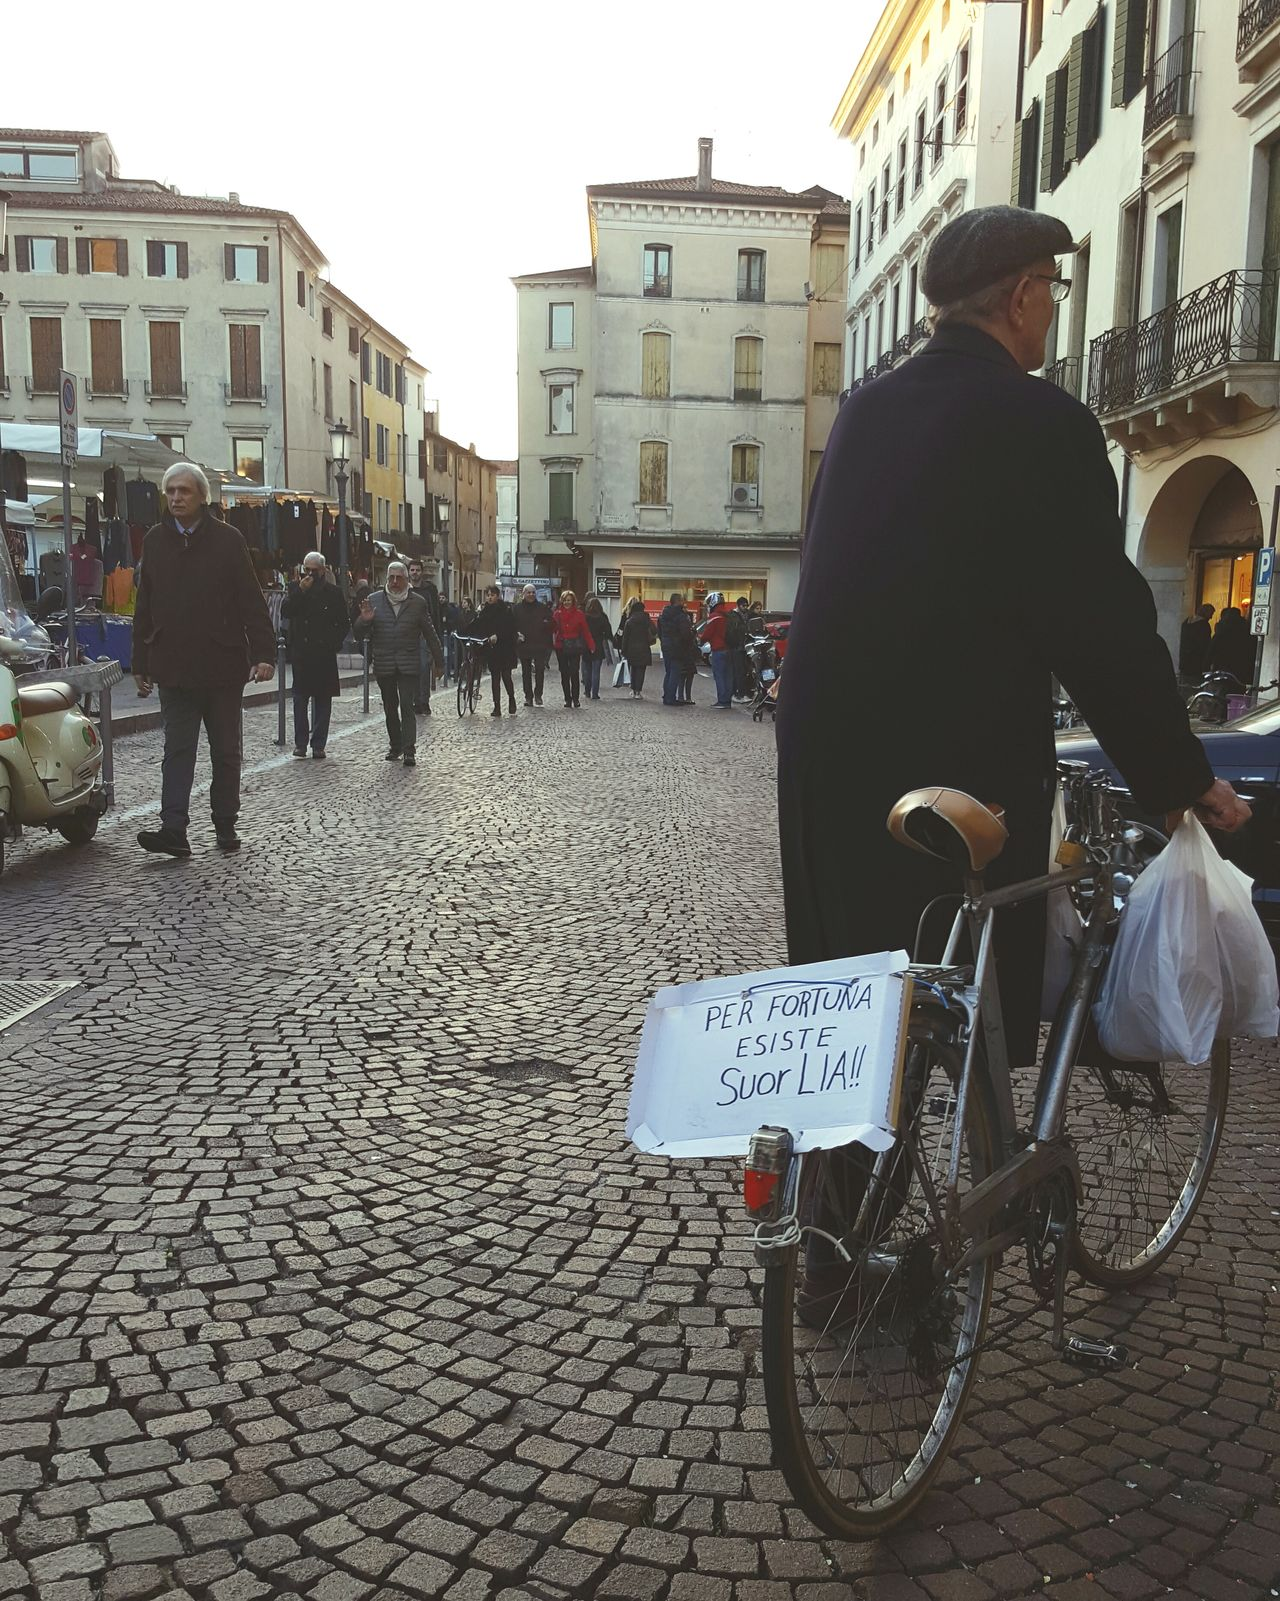 Streetphotography City Building Exterior Street City Life Outdoors Real People People One Man Only Padova Italia Daytime Saturday